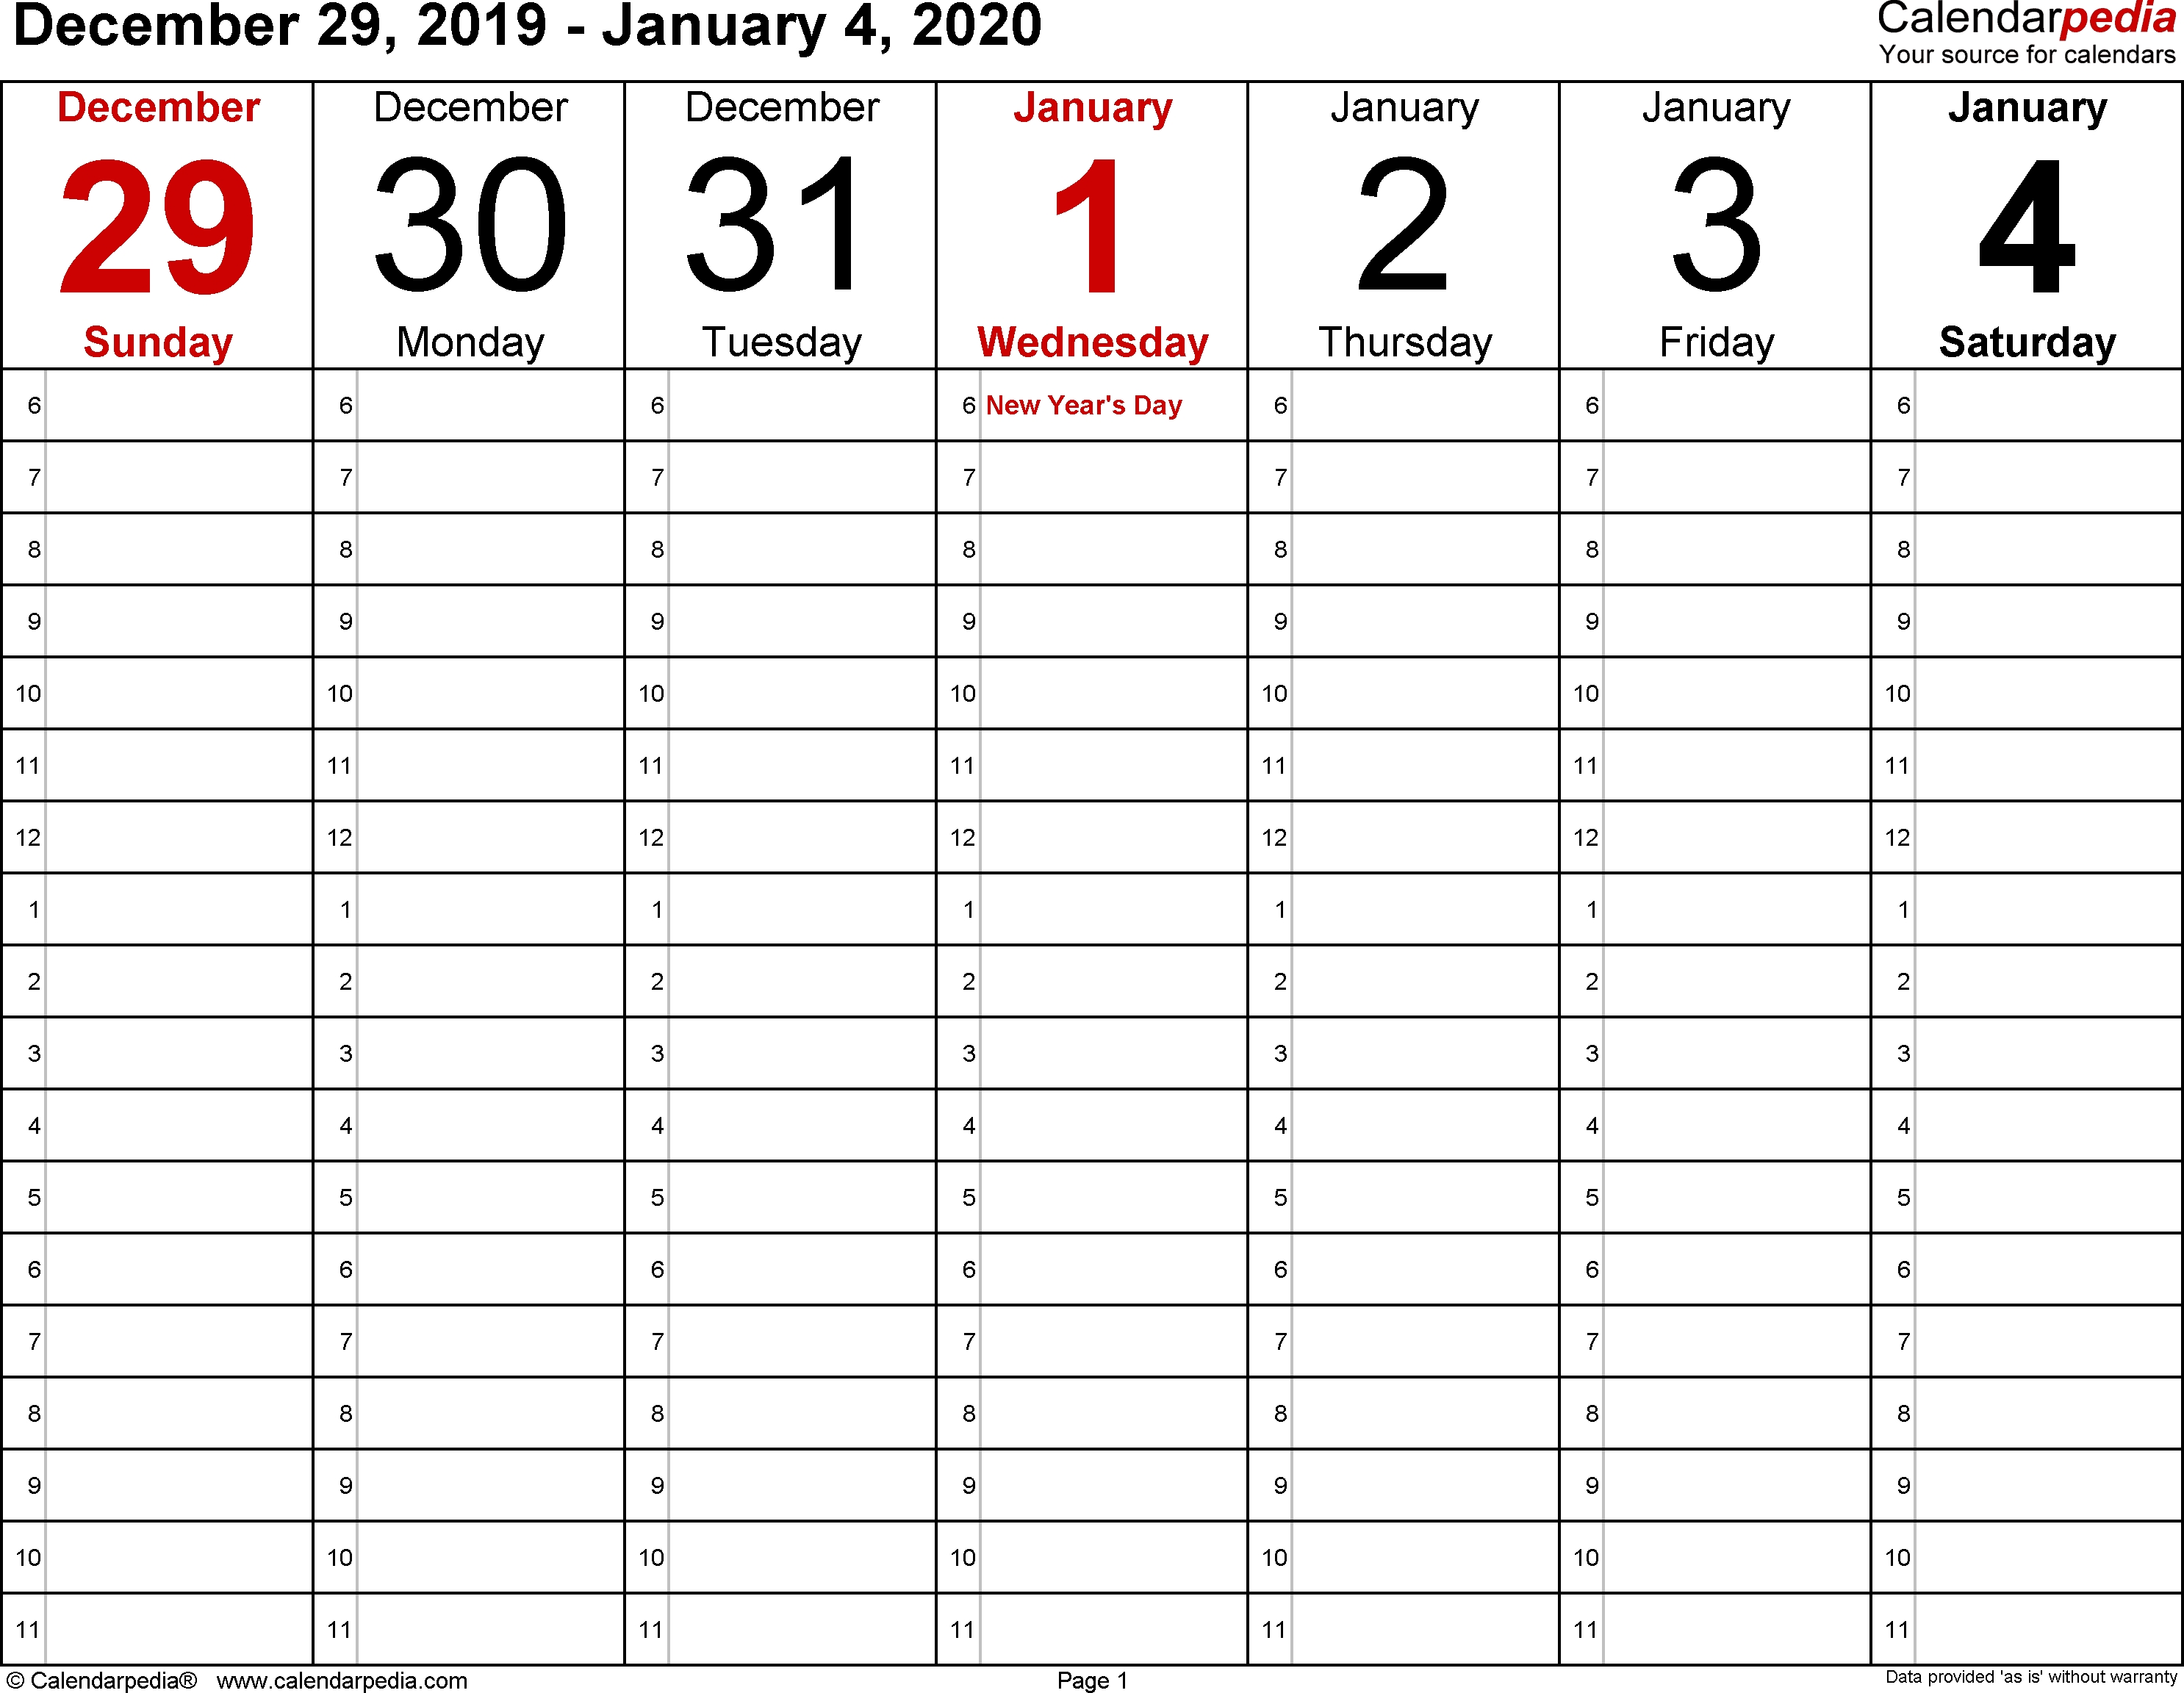 Weekly Calendar 2020 For Word - 12 Free Printable Templates with 2020 Calander To Write On